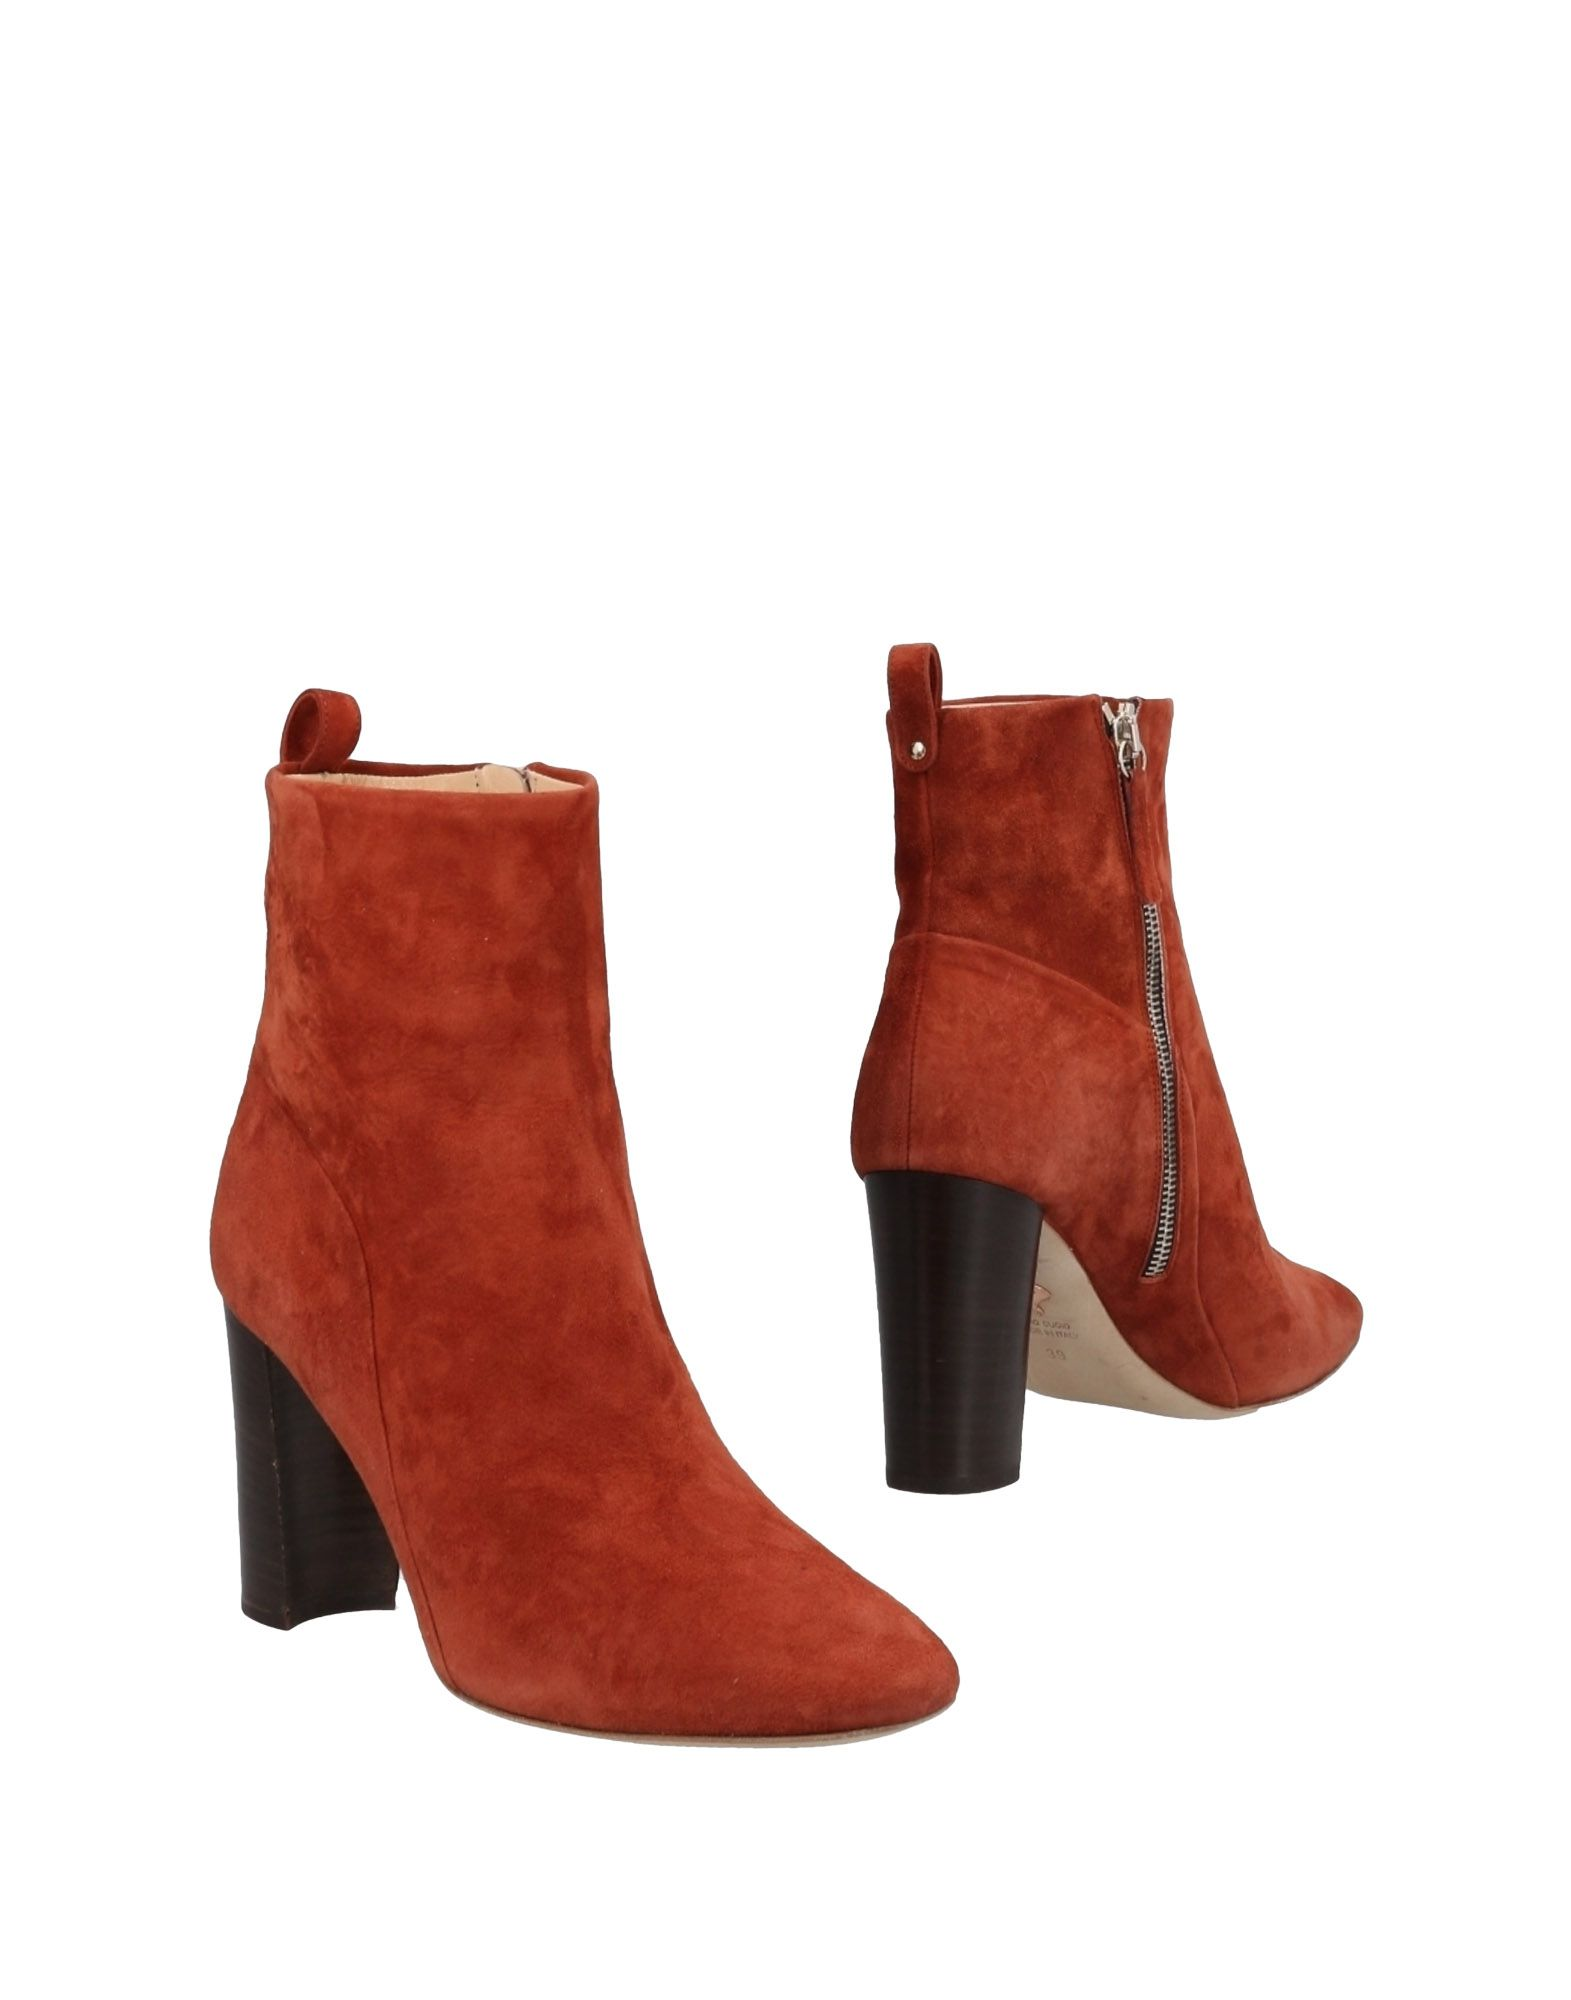 CHELSEA PARIS Ankle Boot in Rust